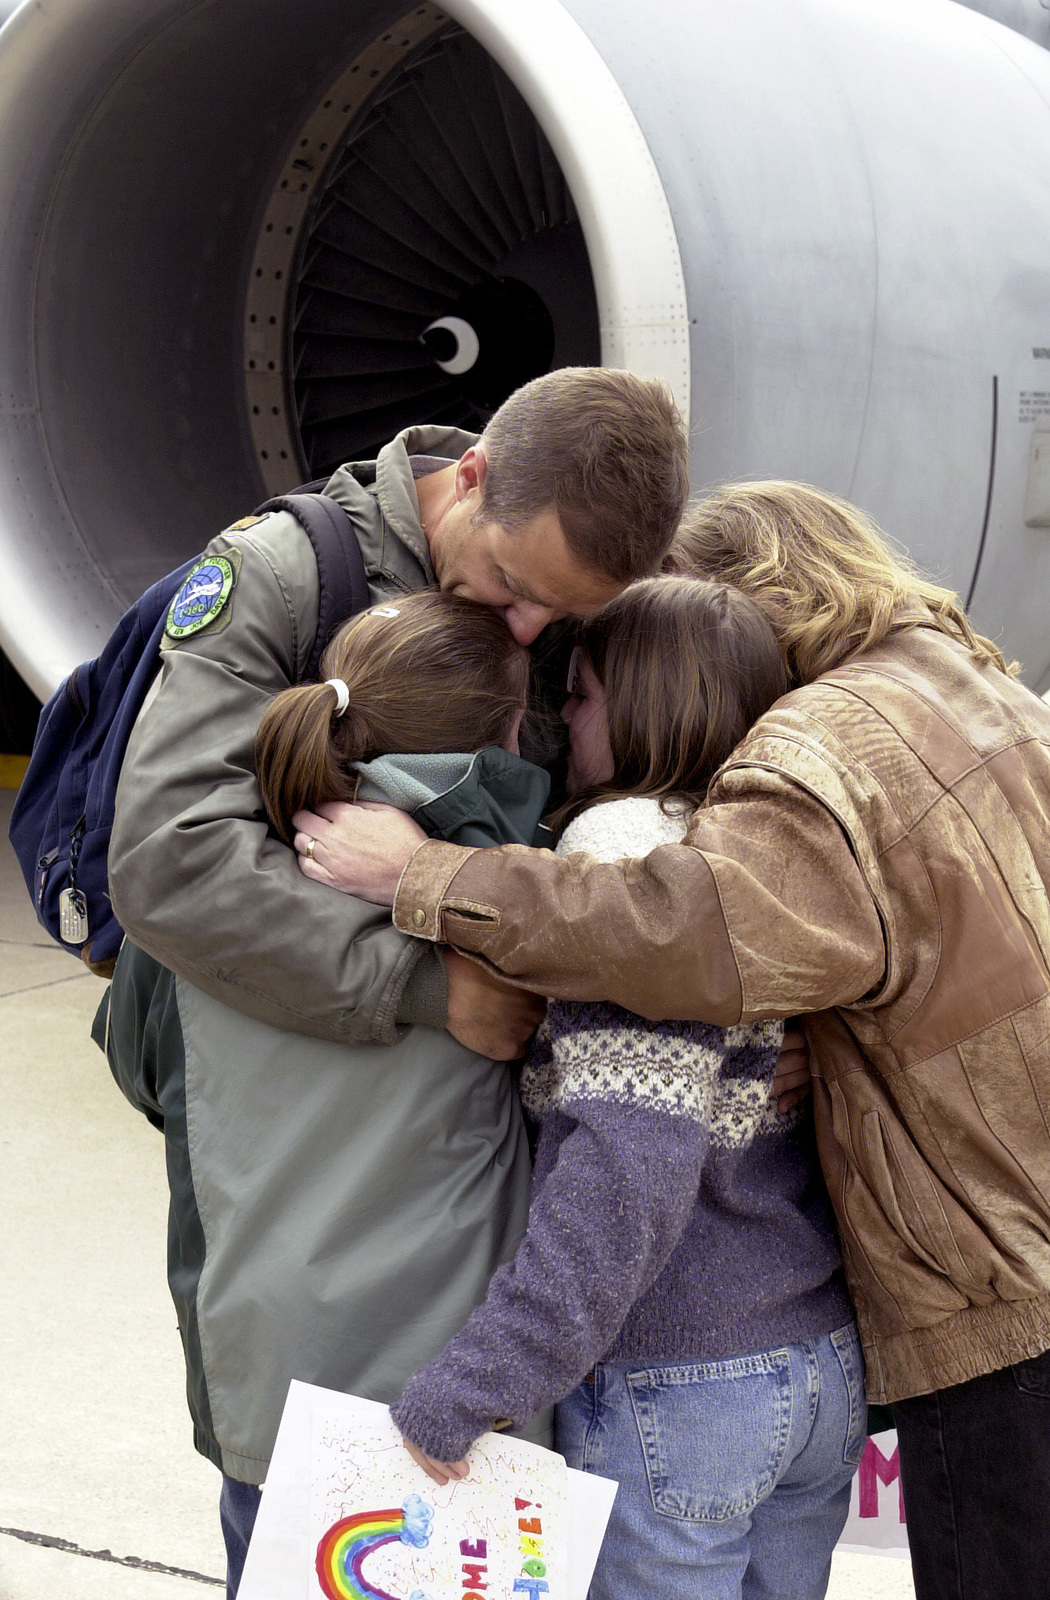 A US Air Force (USAF) 128th Air Refueling Wing (ARW), Wisconsin Air National Guard (ANG) Member embraces his family after returning home at General Mitchell International Airport (IAP), Wisconsin (WI), after a deployment in support of Operation ENDURING FREEDOM